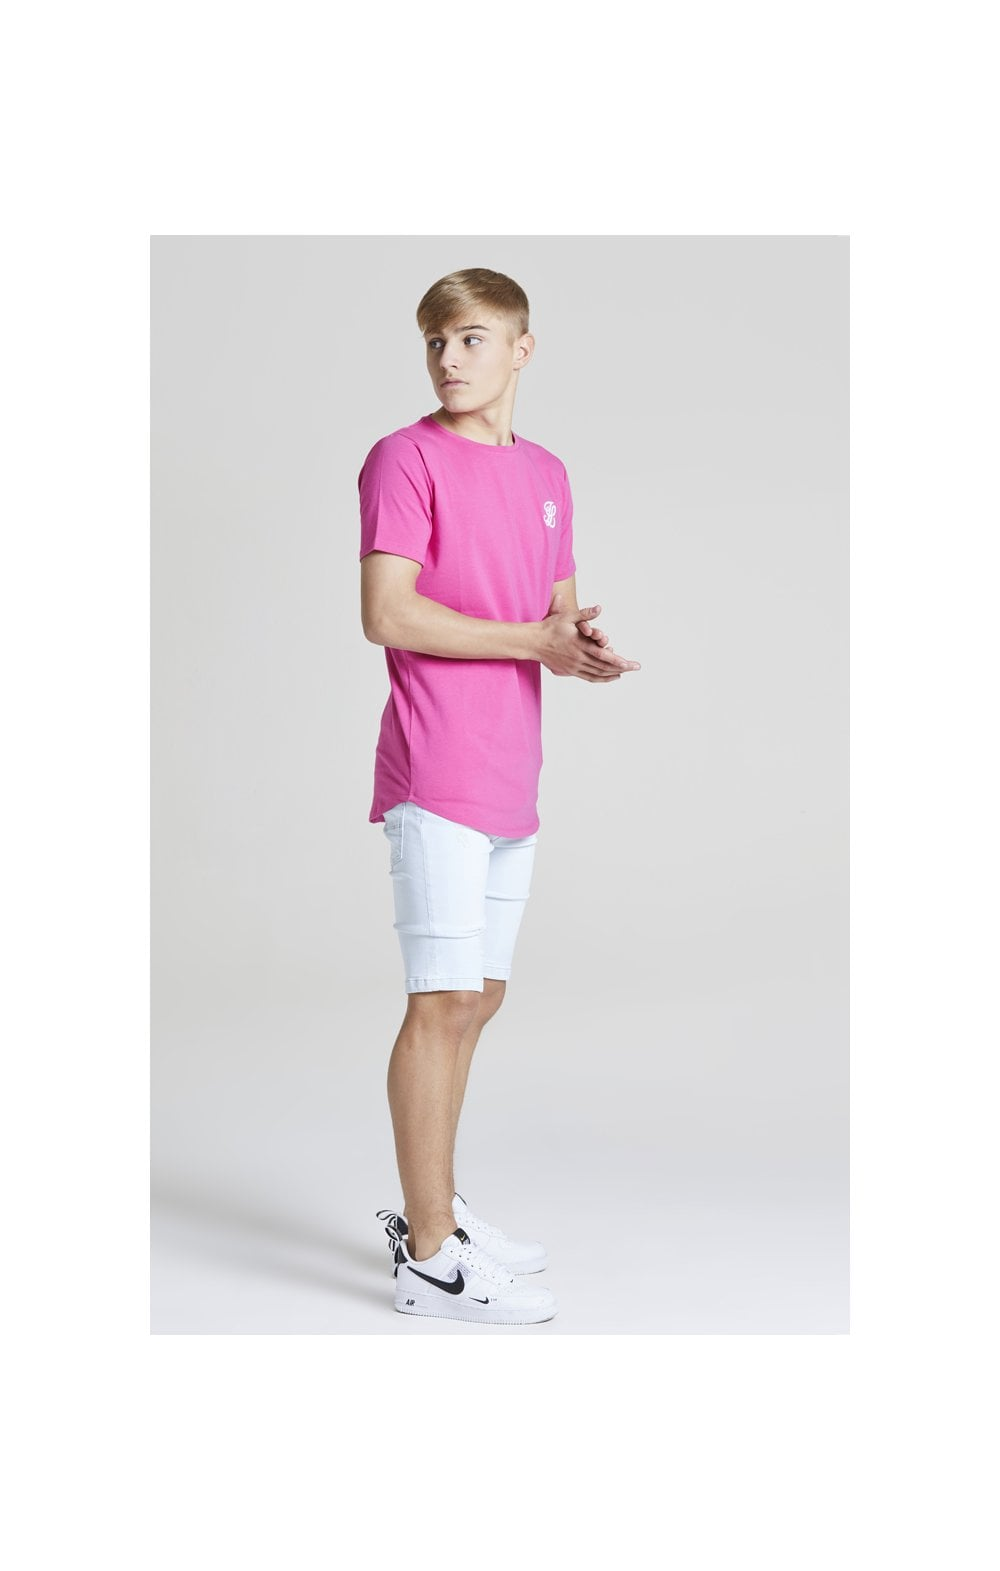 Illusive London Core Tee - Pink (3)